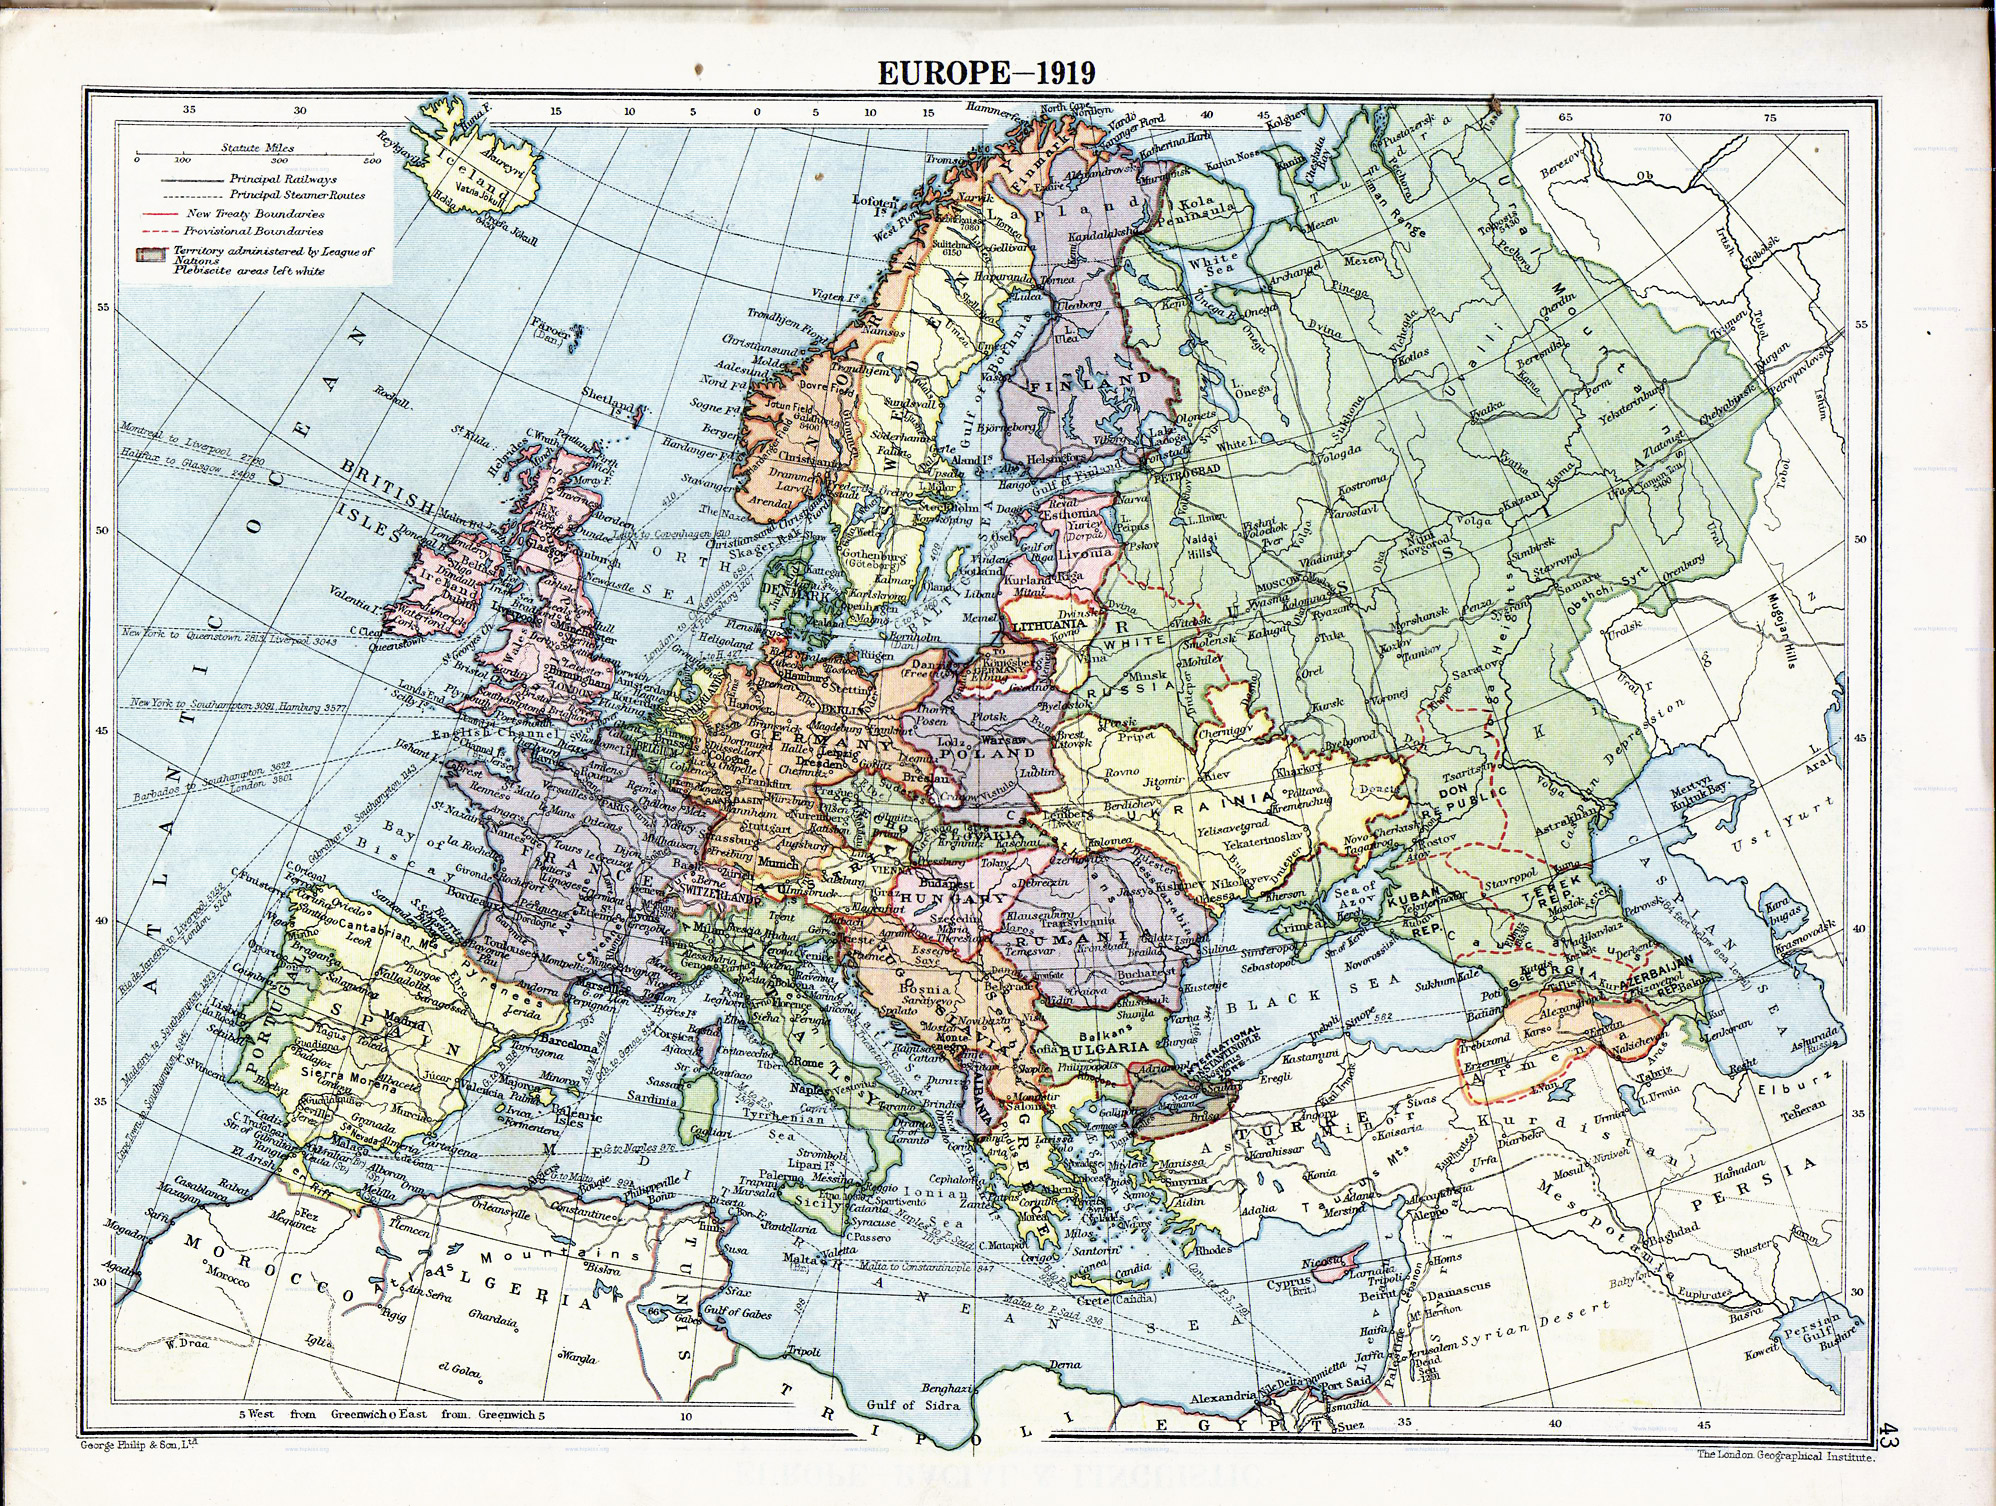 Mapa De Europa 1919.File Europe Map 1919 Jpg Wikimedia Commons